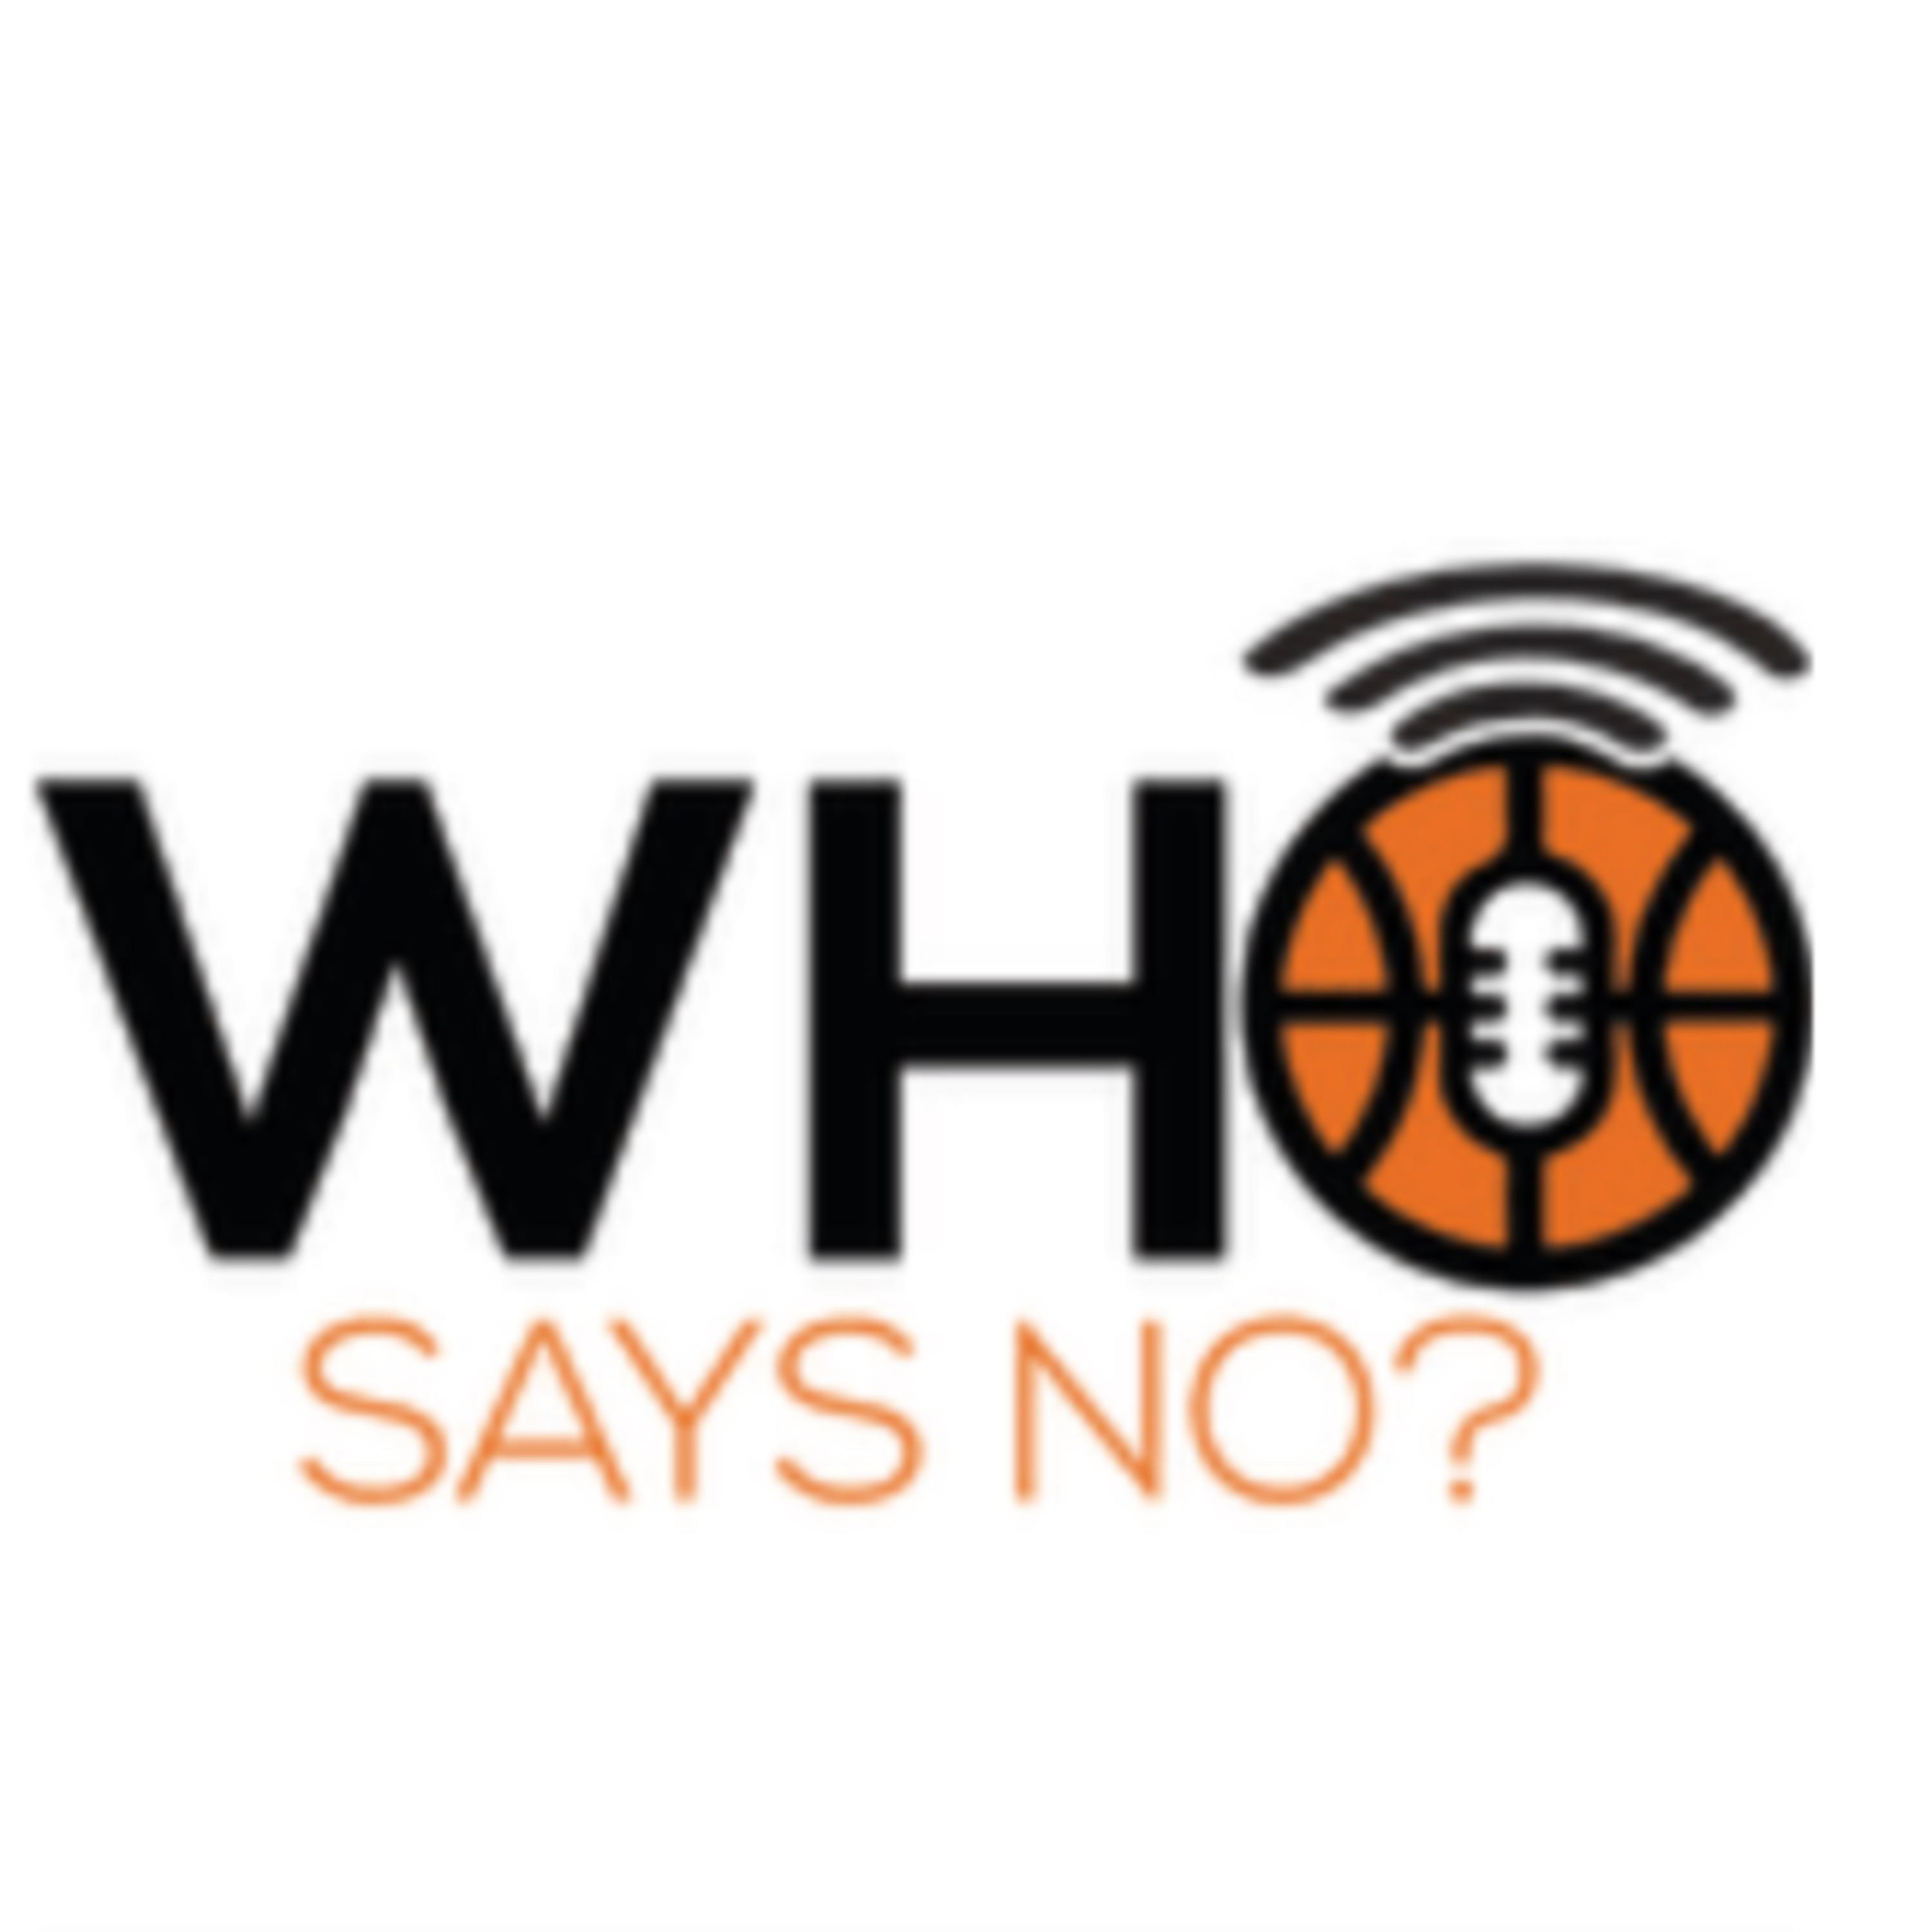 Who Says No? Episode 4 - COVID-19 Edition